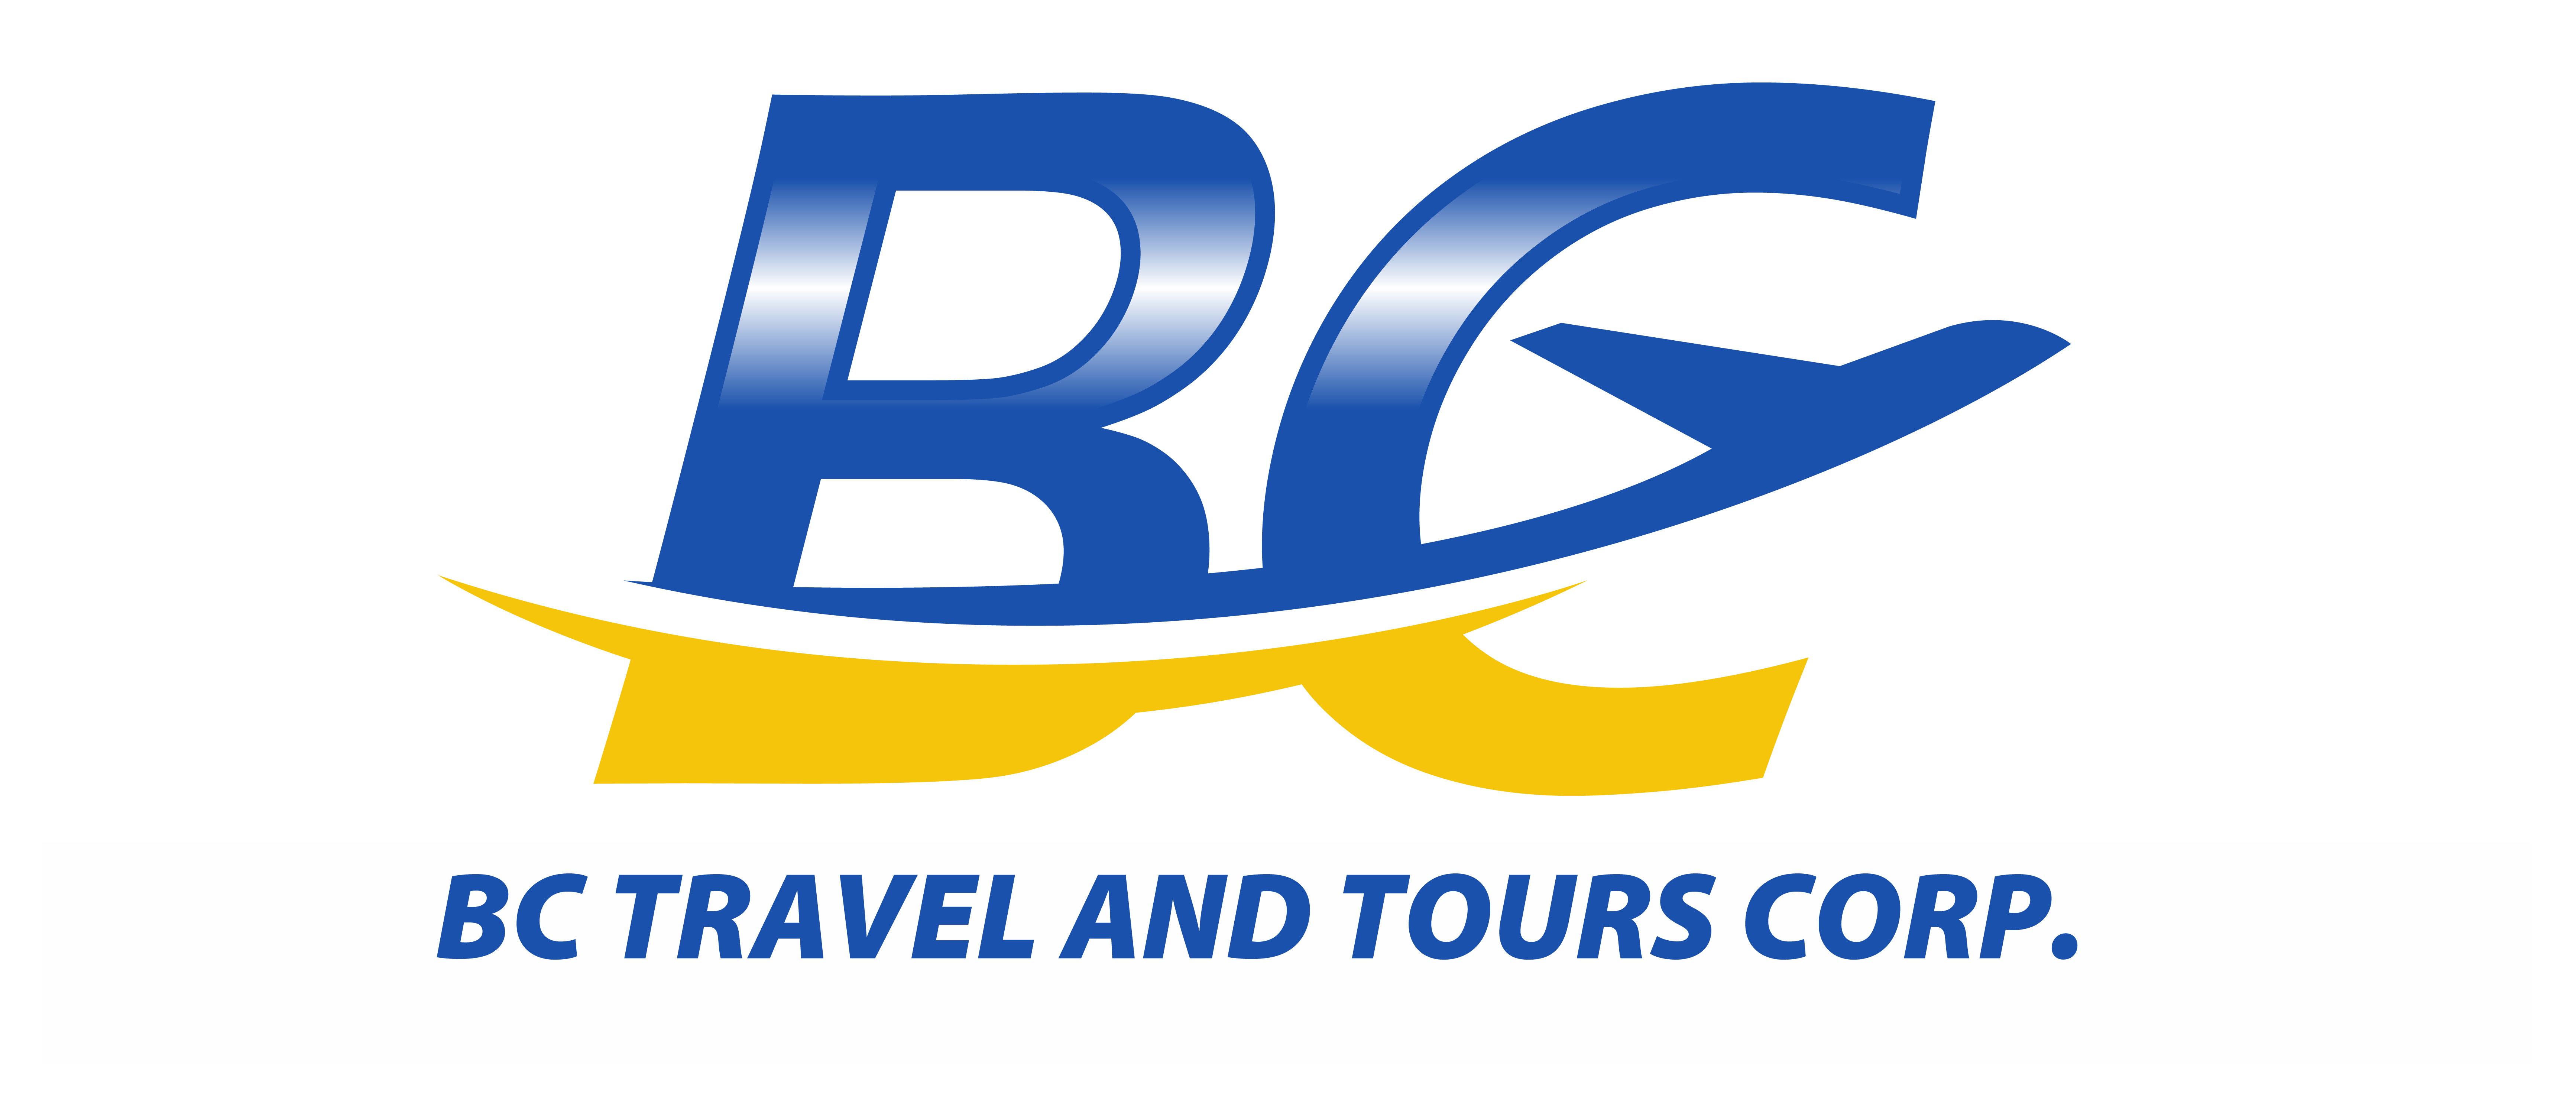 BC Travel and Tours Corp.